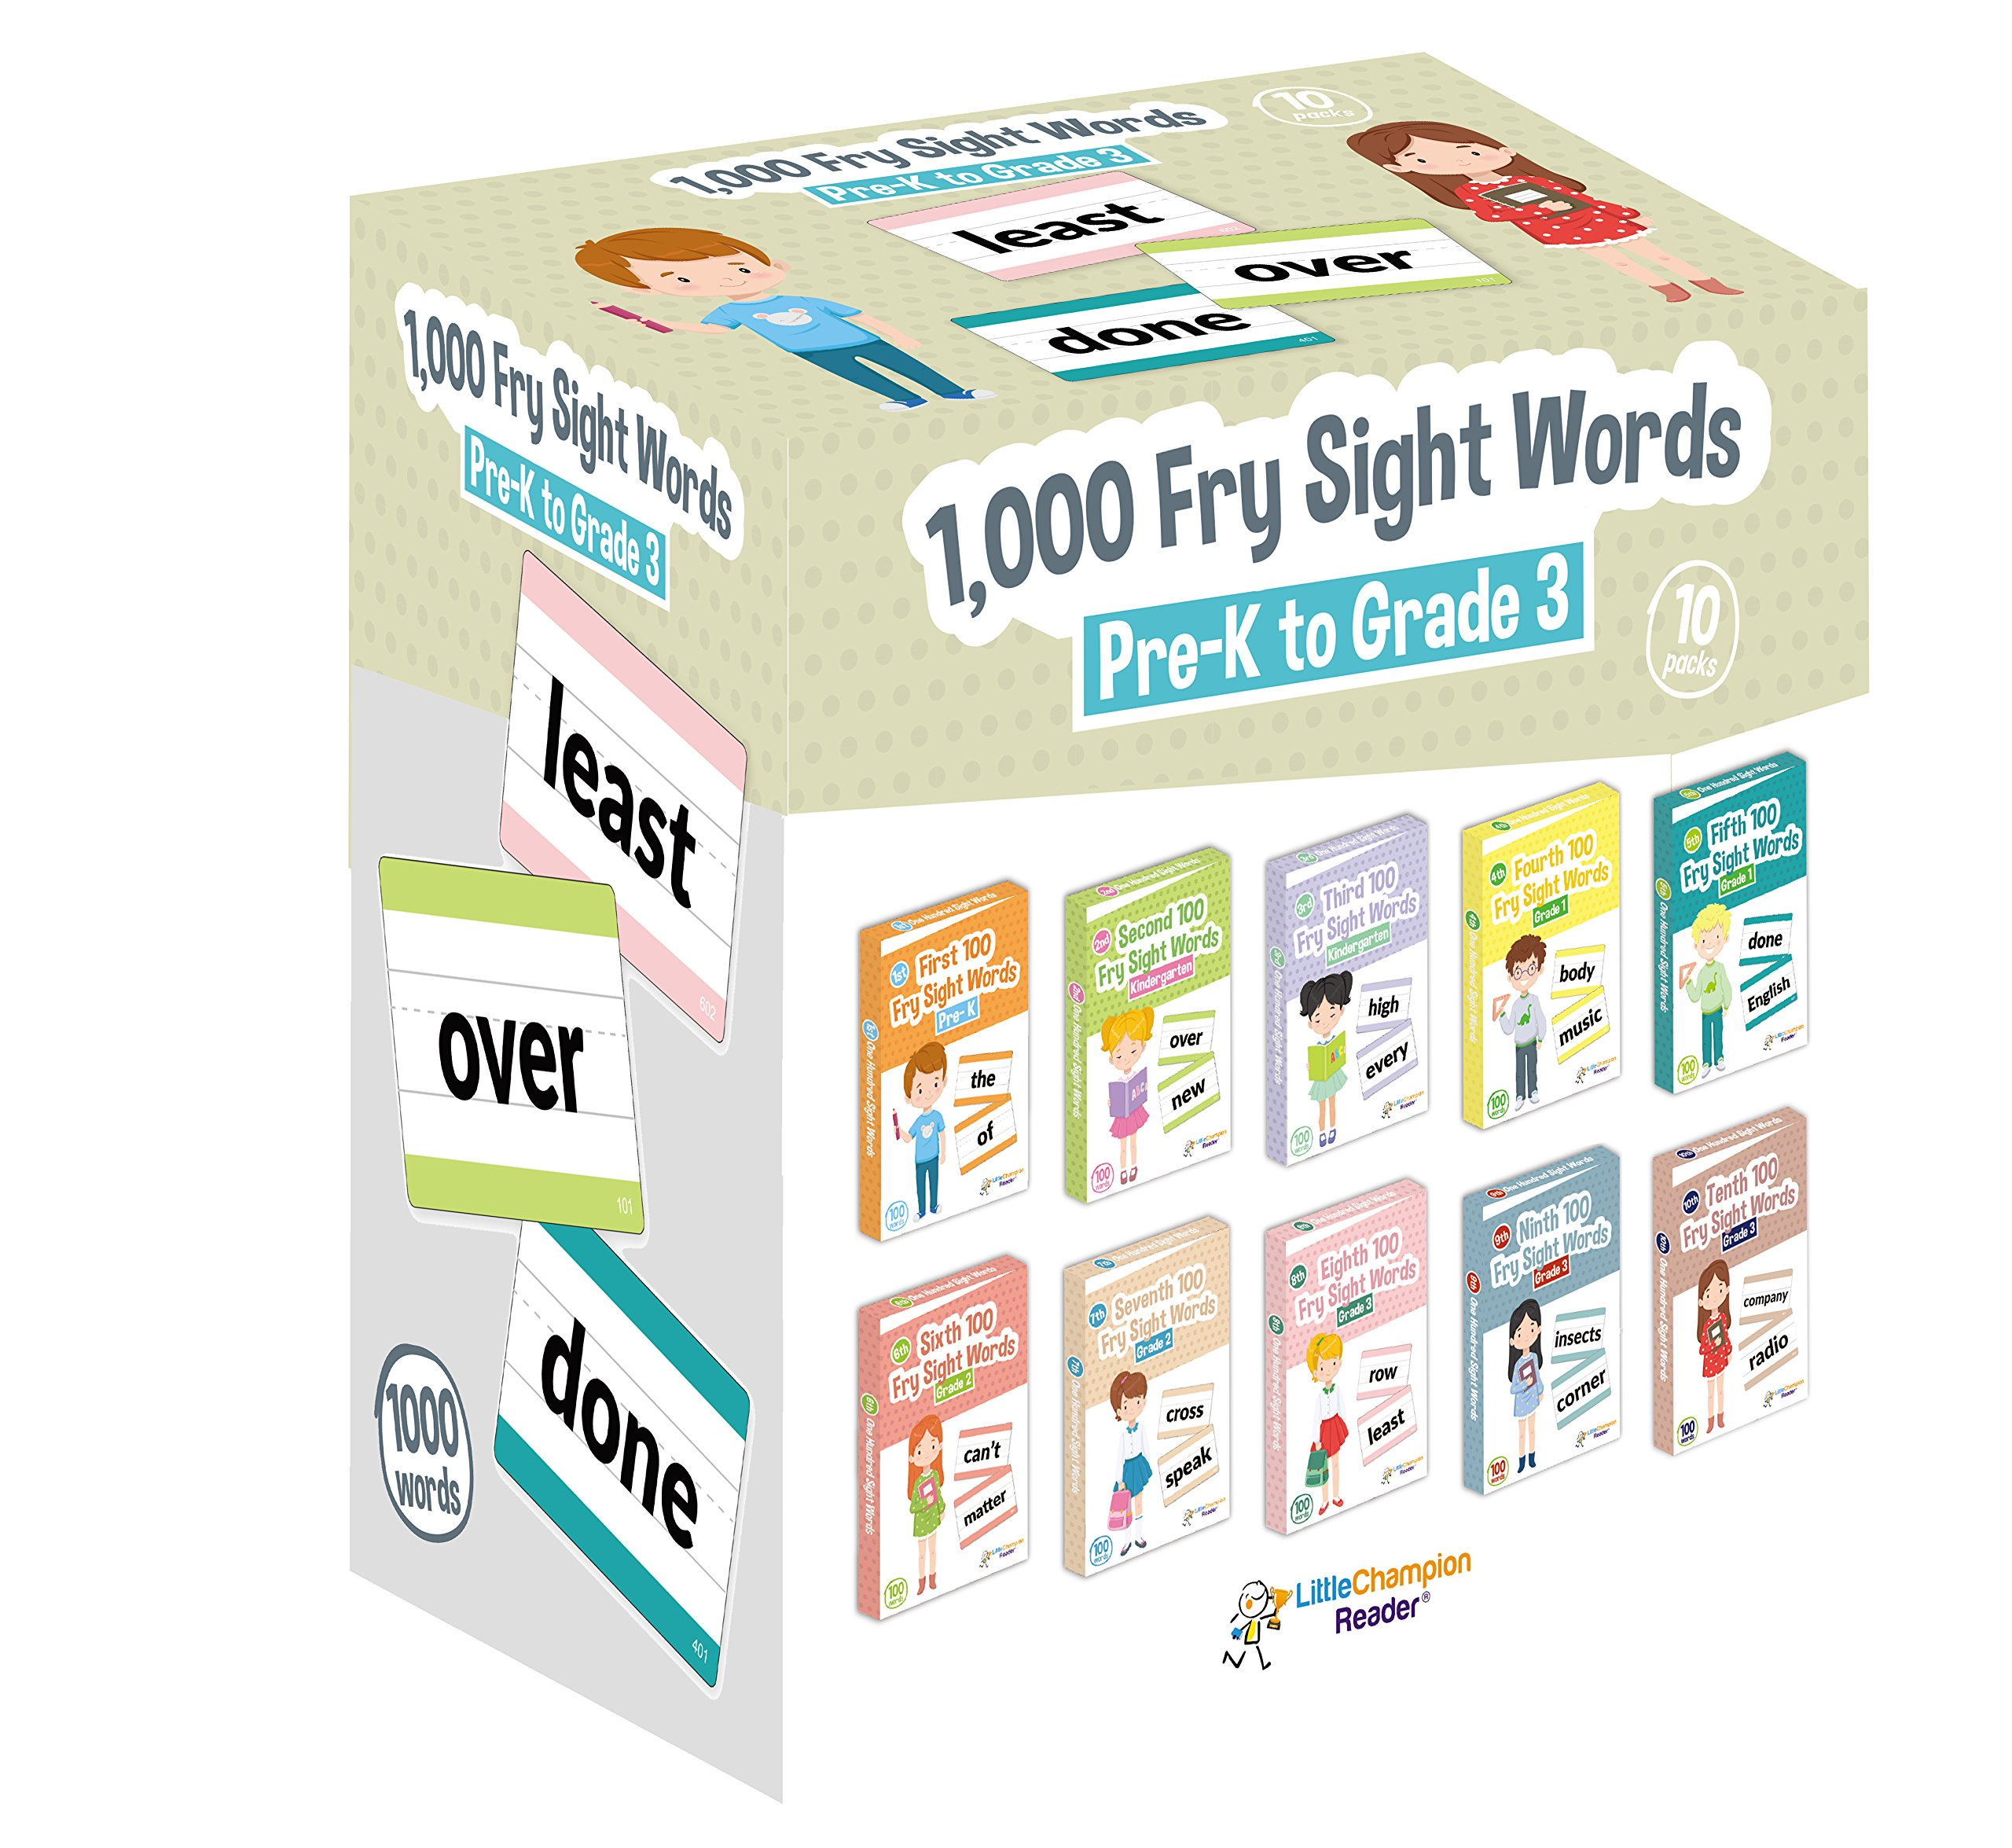 Little Champion Reader 1,000 Sight Fry Dolch Word-List Flashcards in 10-Pack Bundle Set, Pre-K to 3rd Grade, Teaches 1,000 Dolch Fry High-Frequency Sight Words